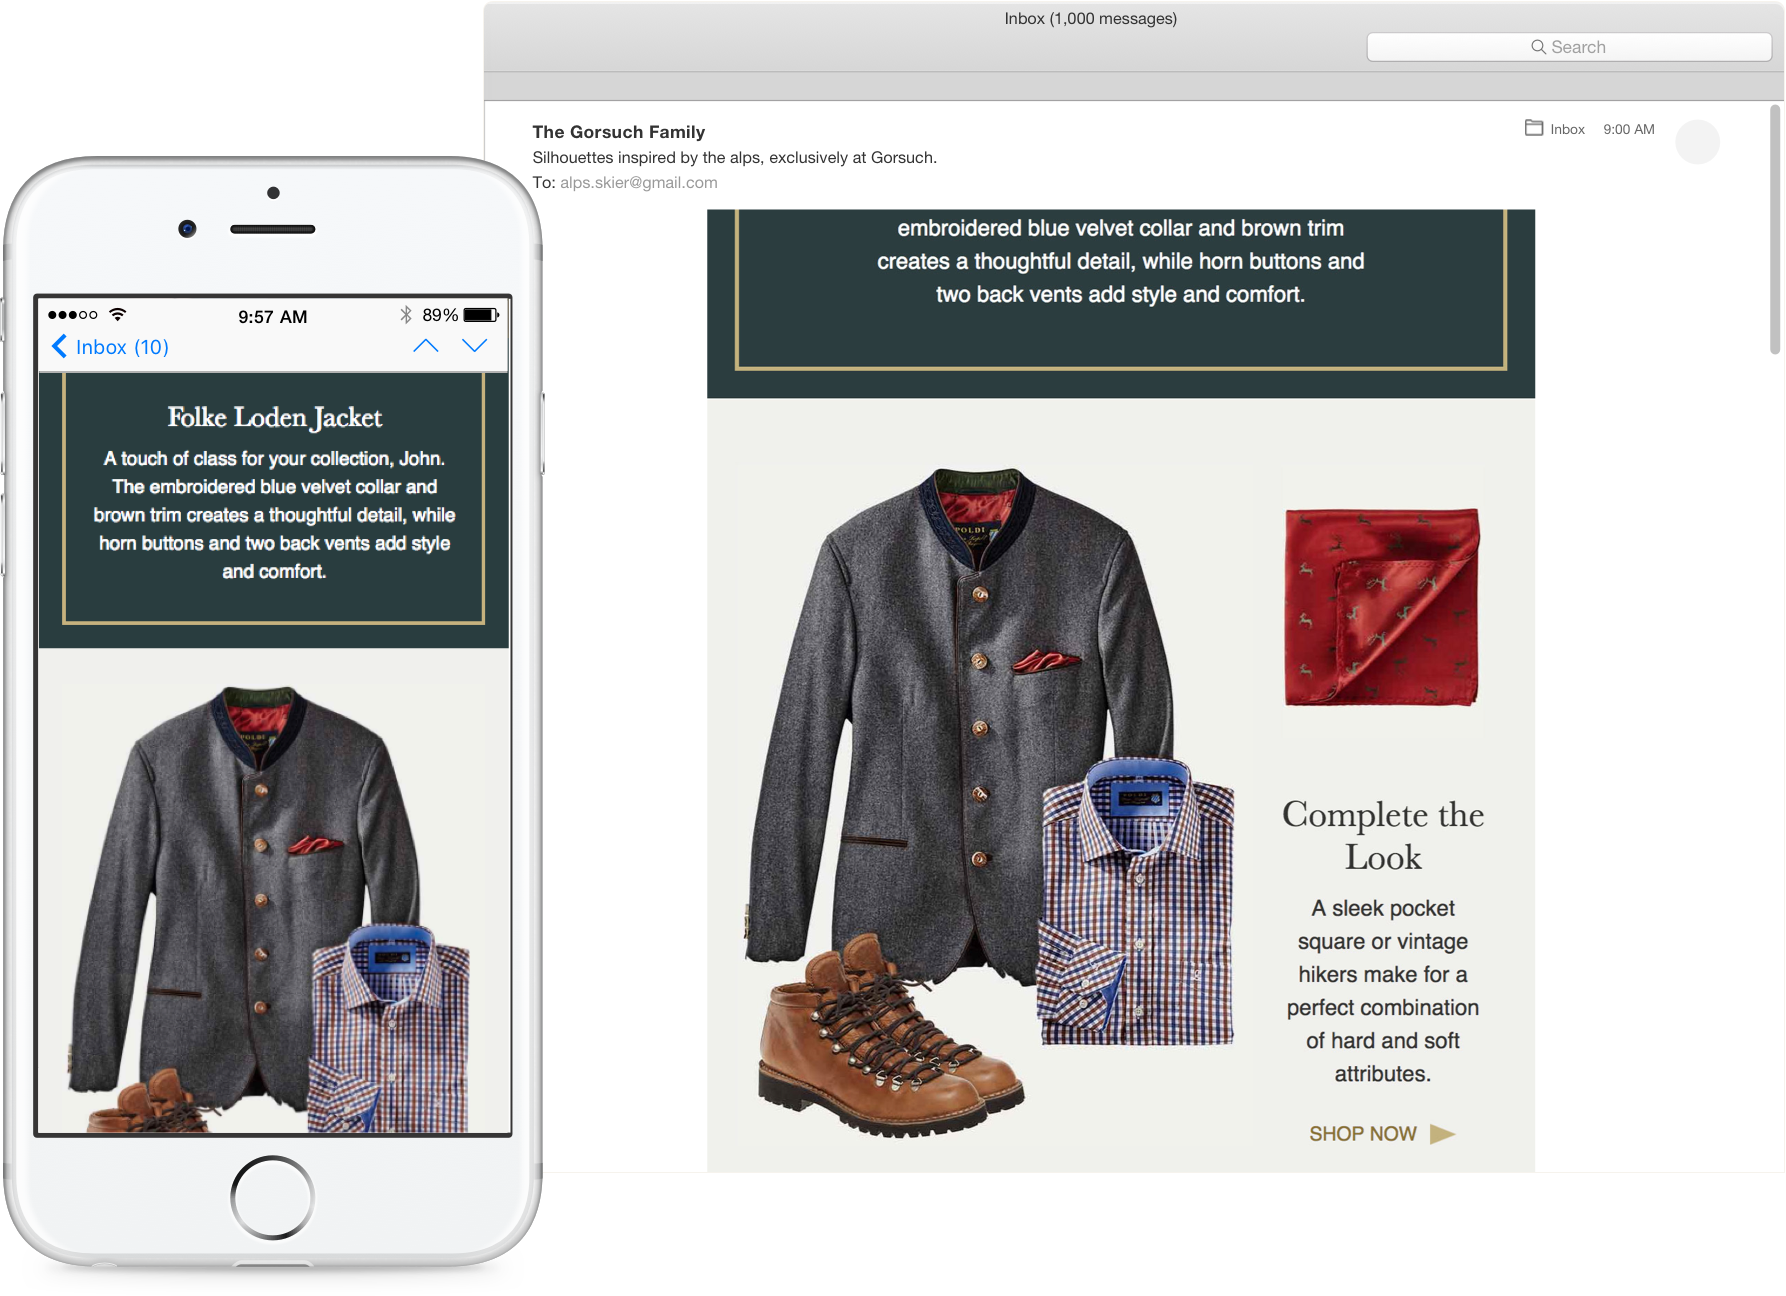 A mockup of a campaign shown on both mobile and desktop.